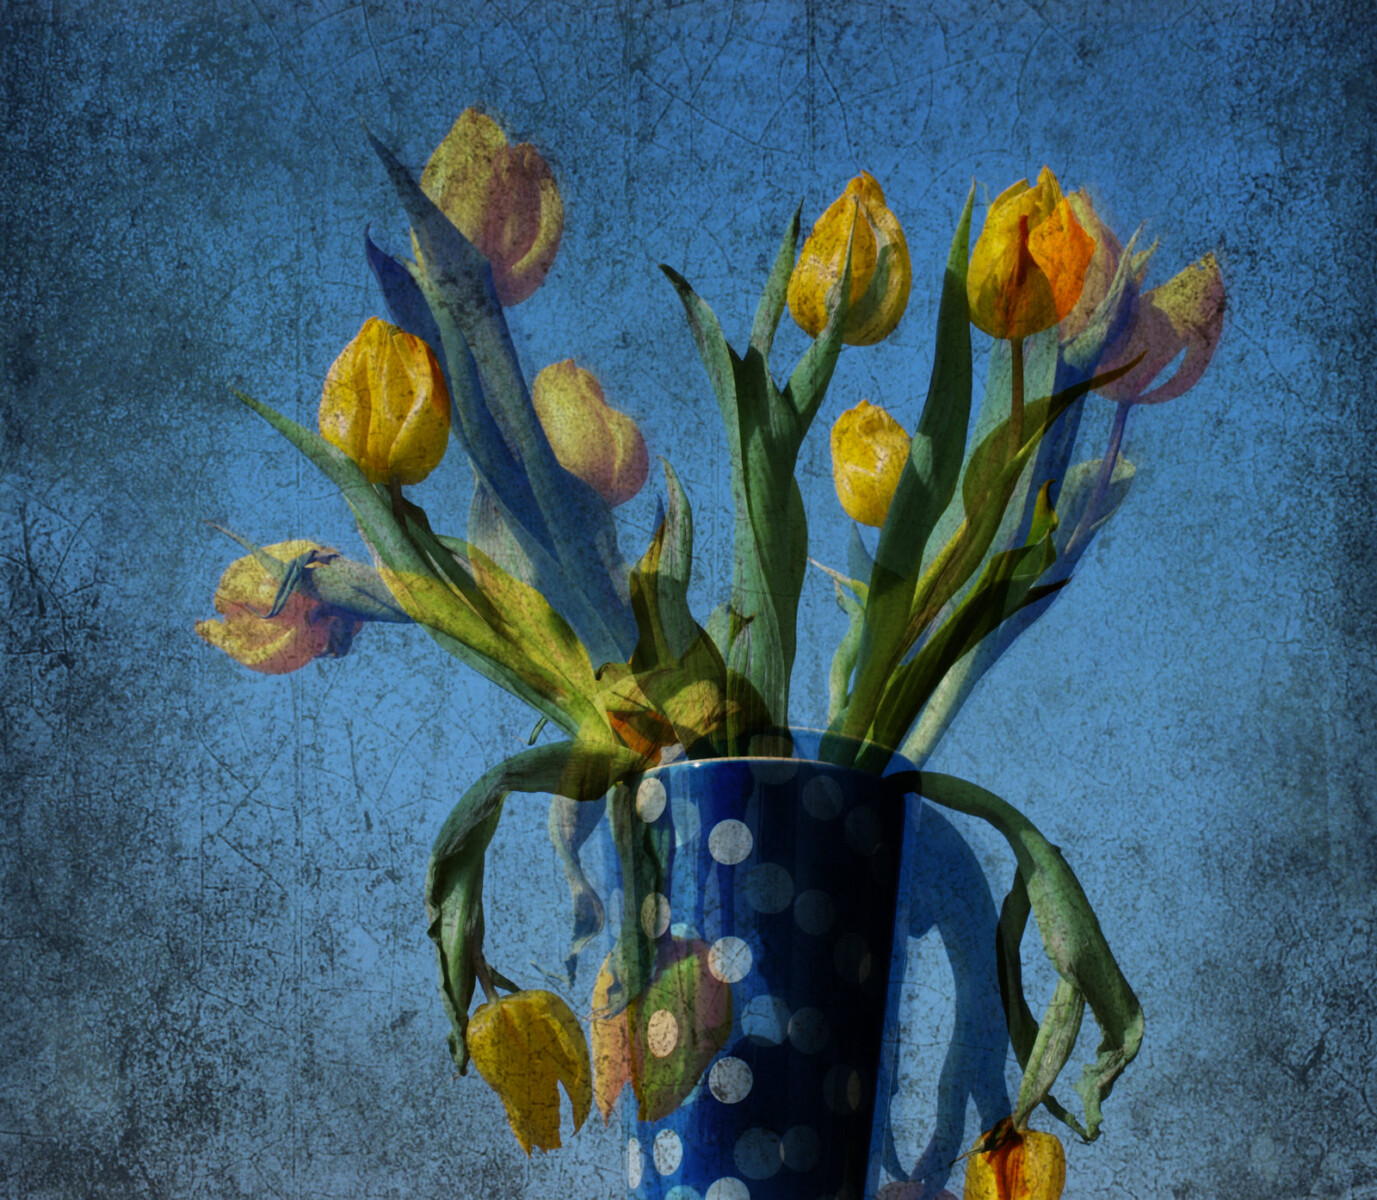 yellow tulips with polka dots, 2011